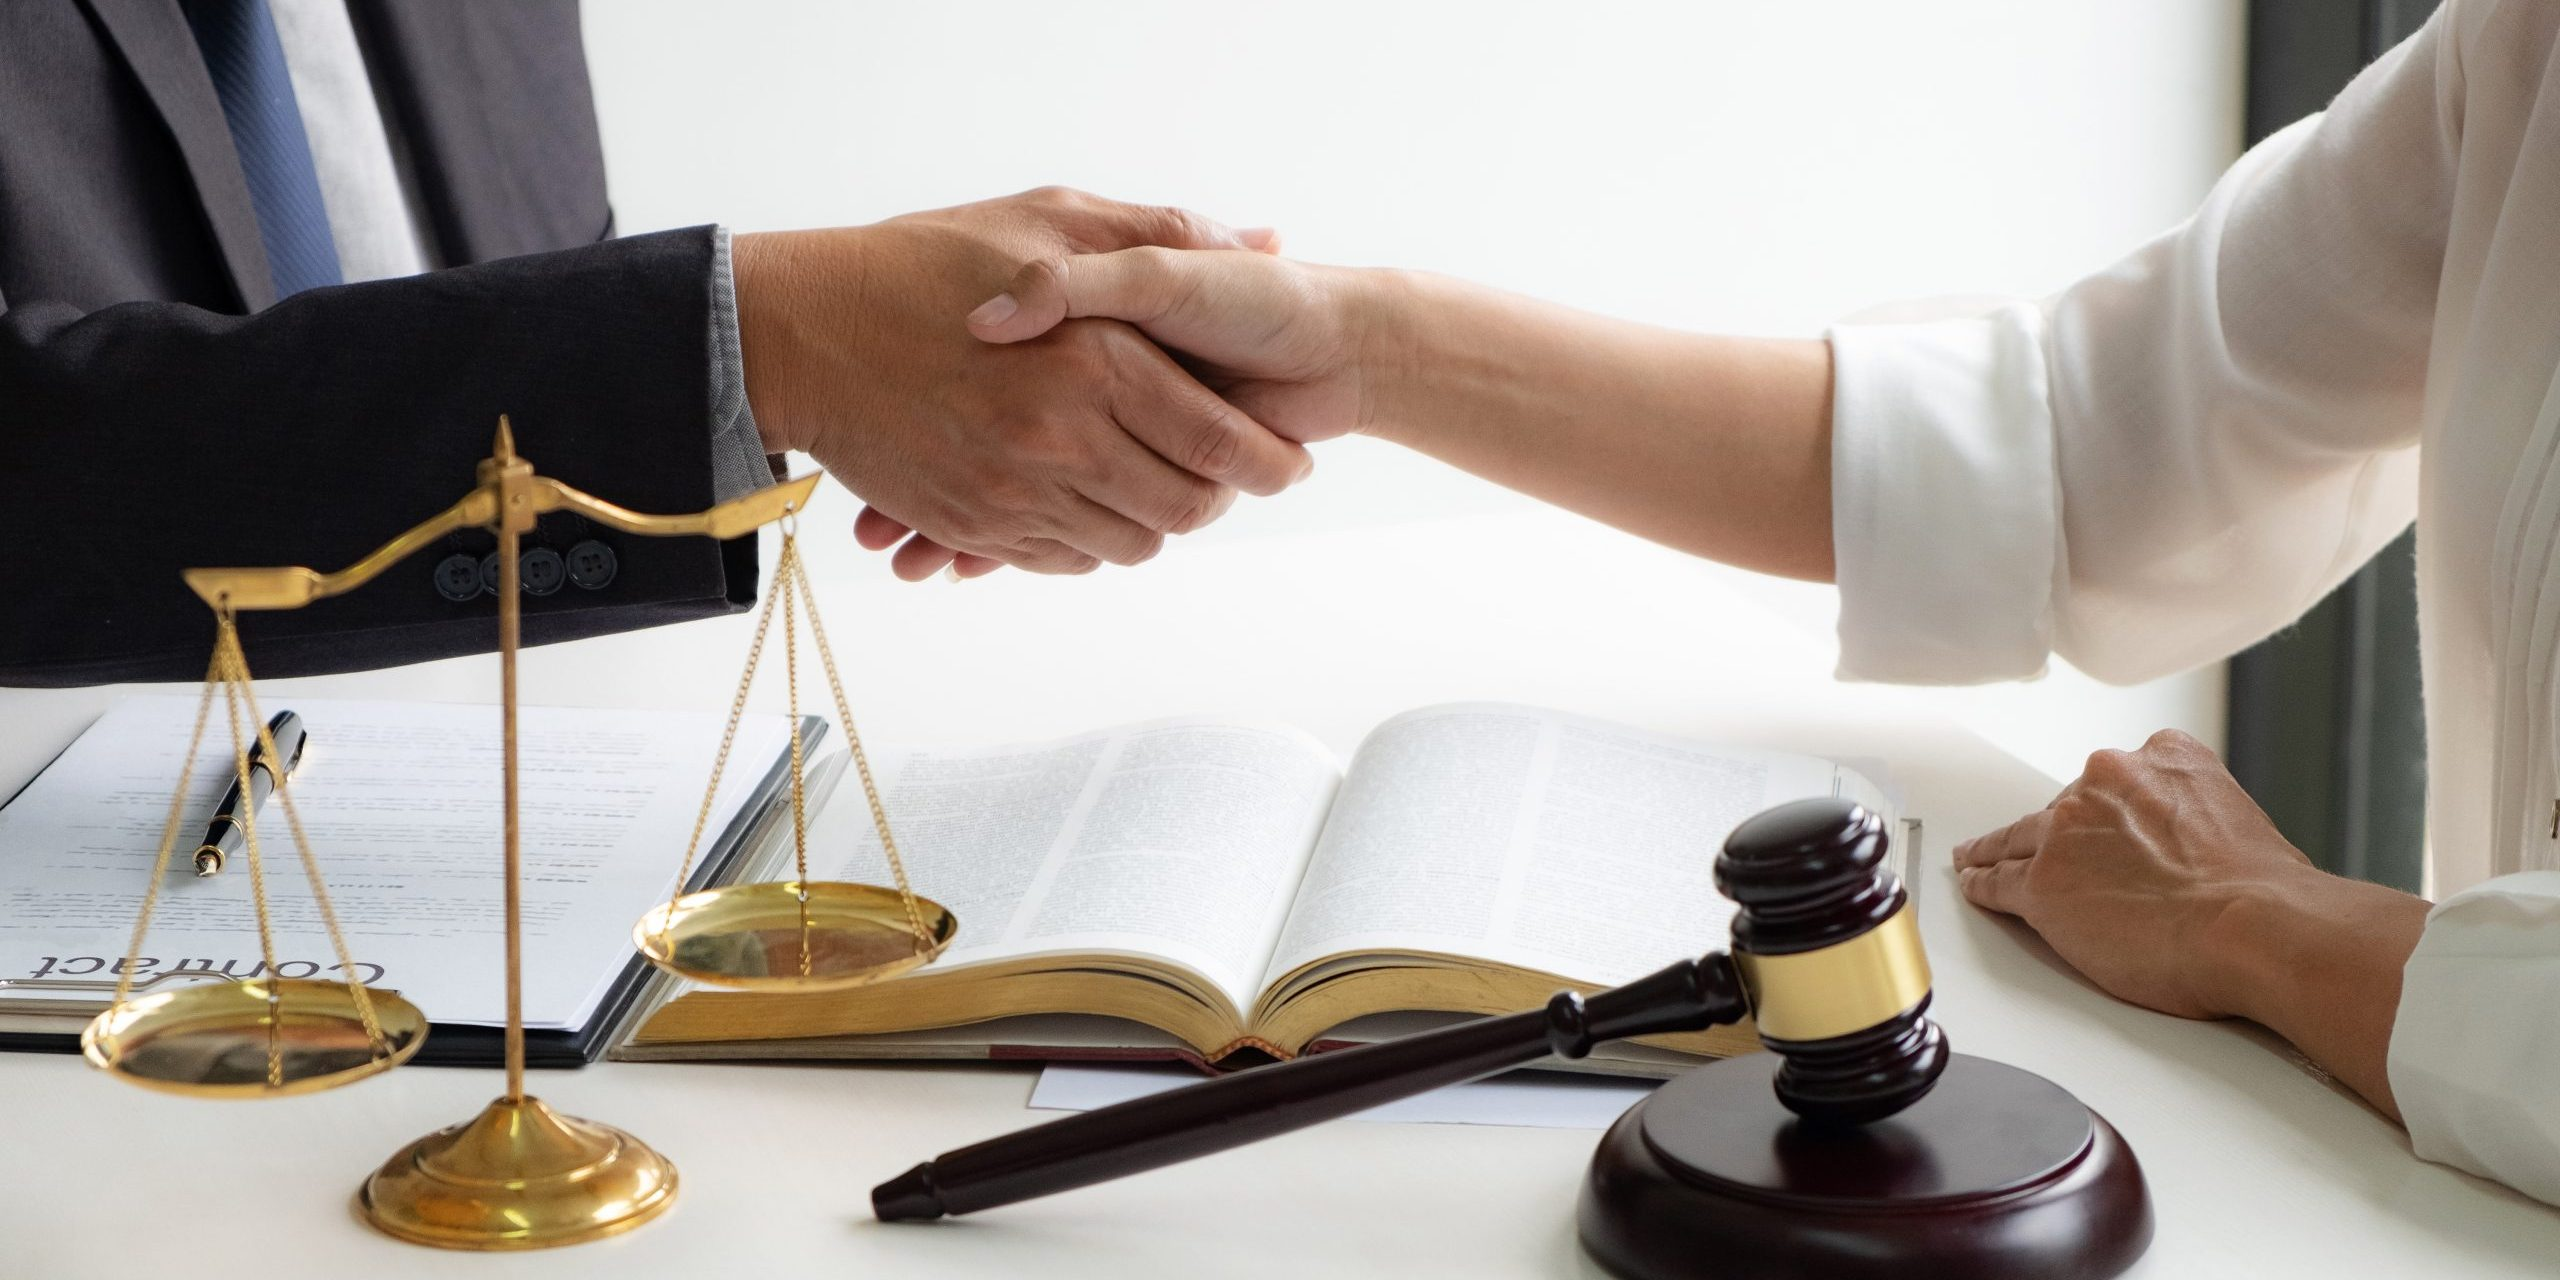 lawyer consultant with client shaking hands together with contract agreement.